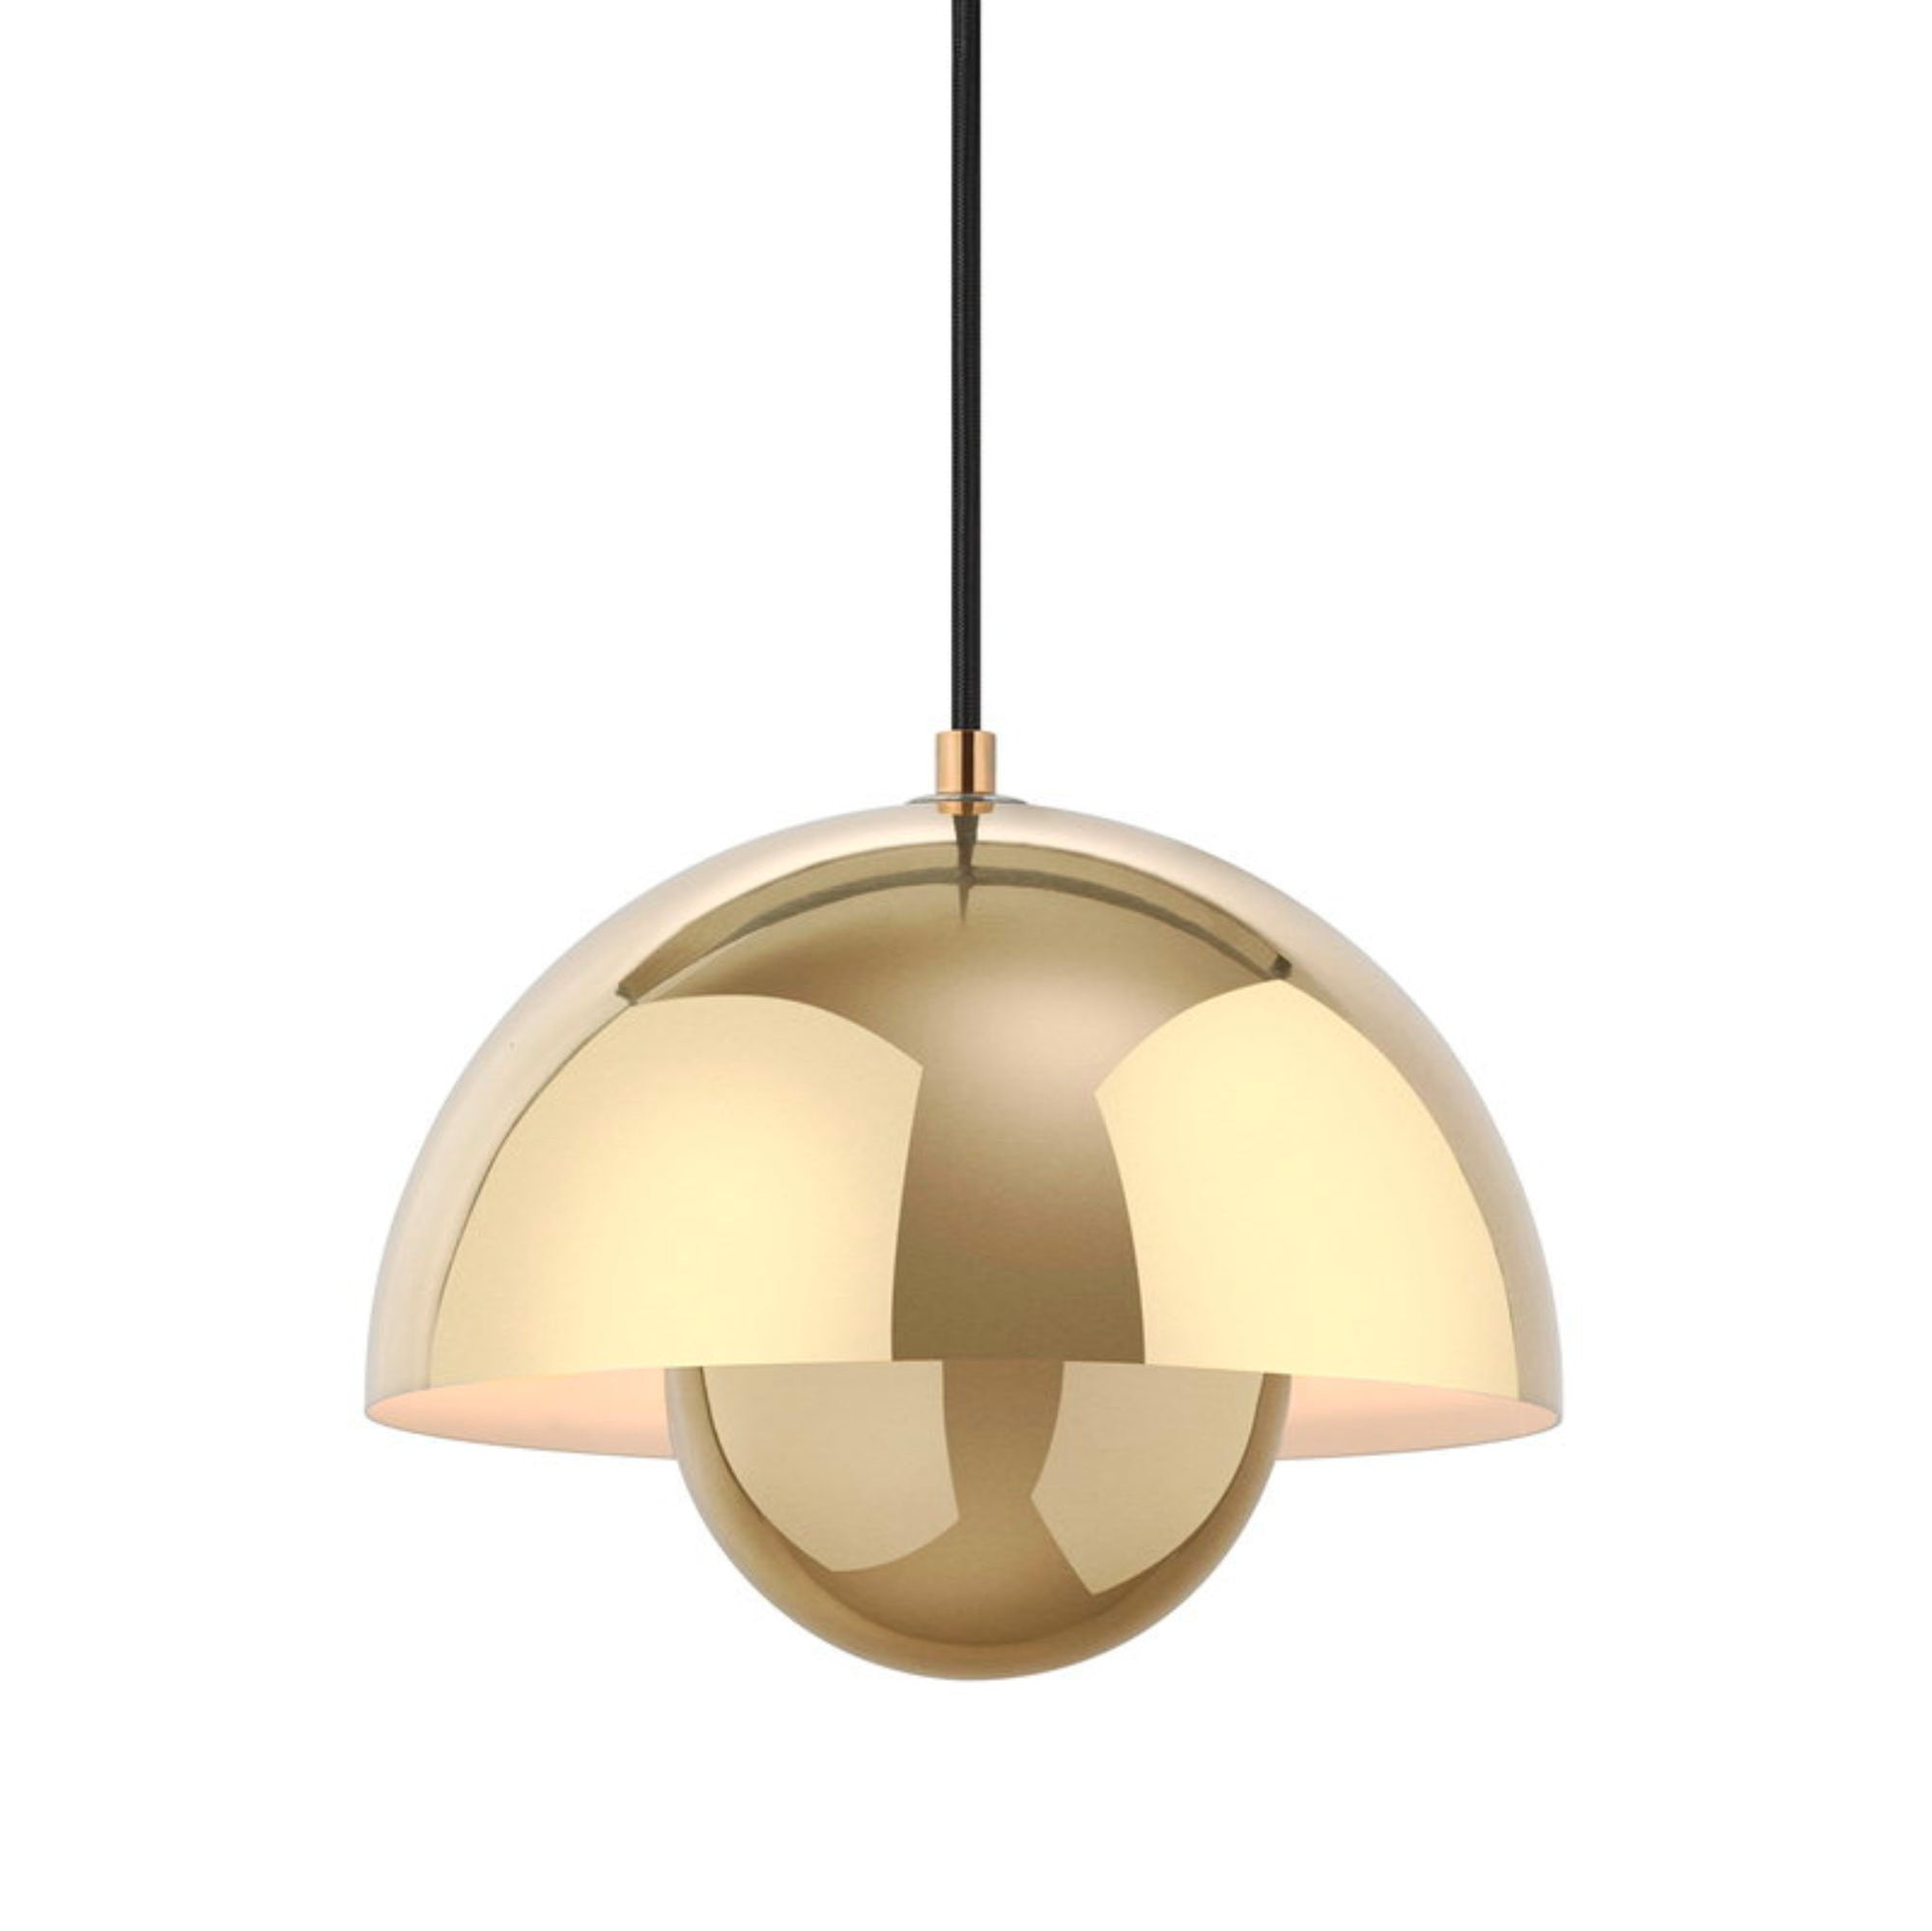 &Tradition Flowerpot pendant lamp, polished brass